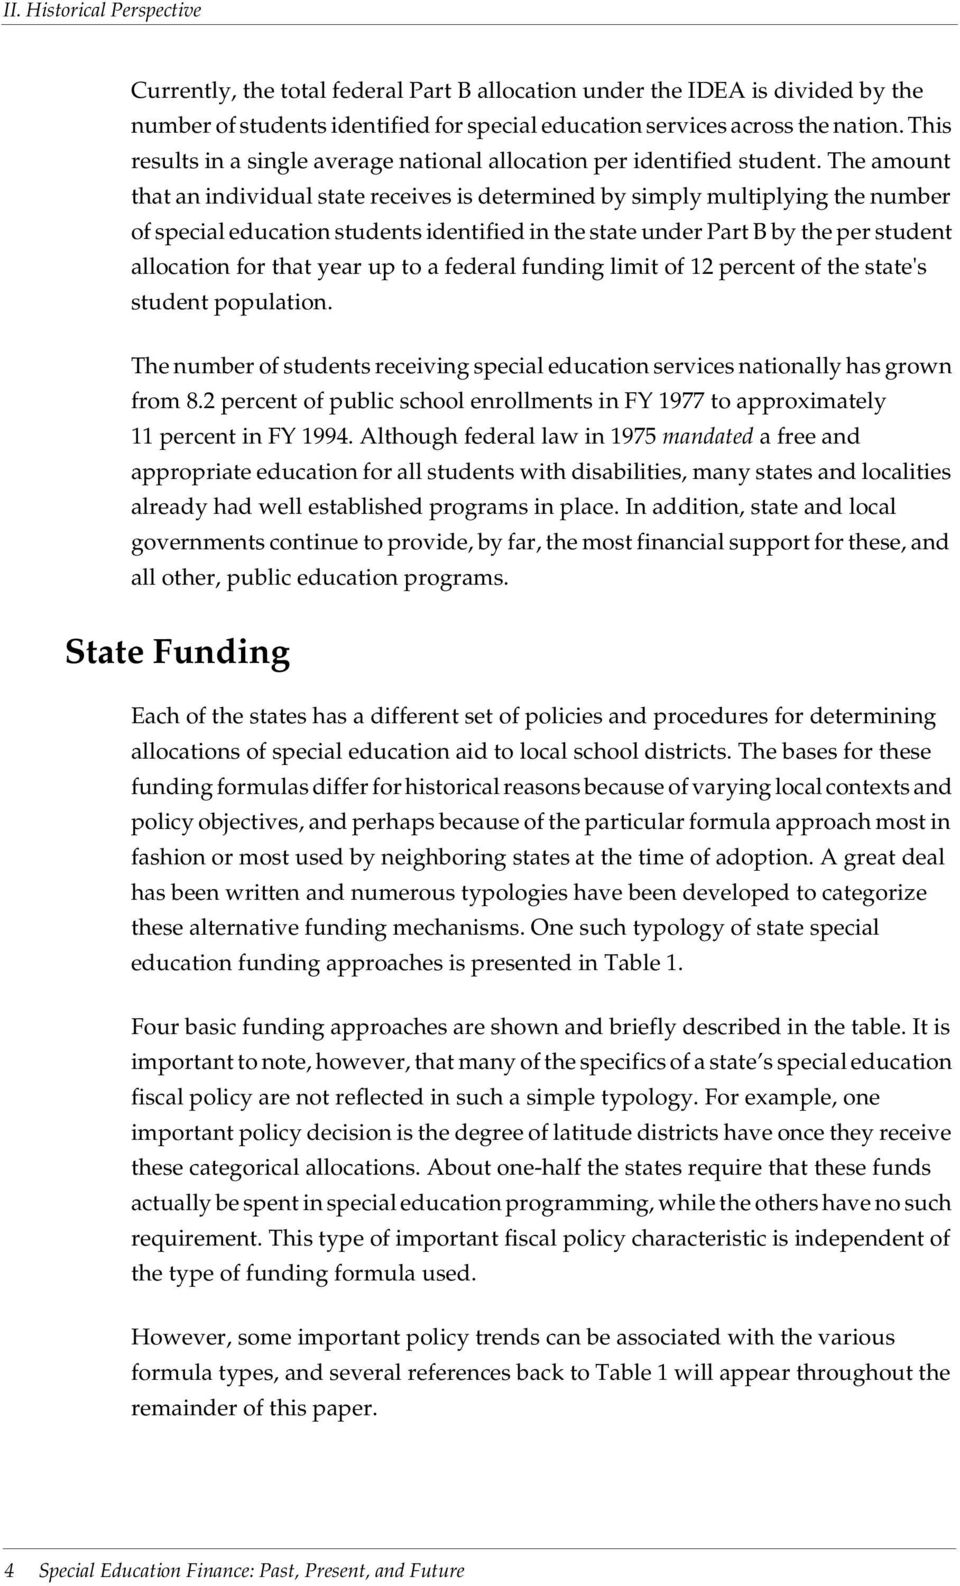 The amount that an individual state receives is determined by simply multiplying the number of special education students identified in the state under Part B by the per student allocation for that